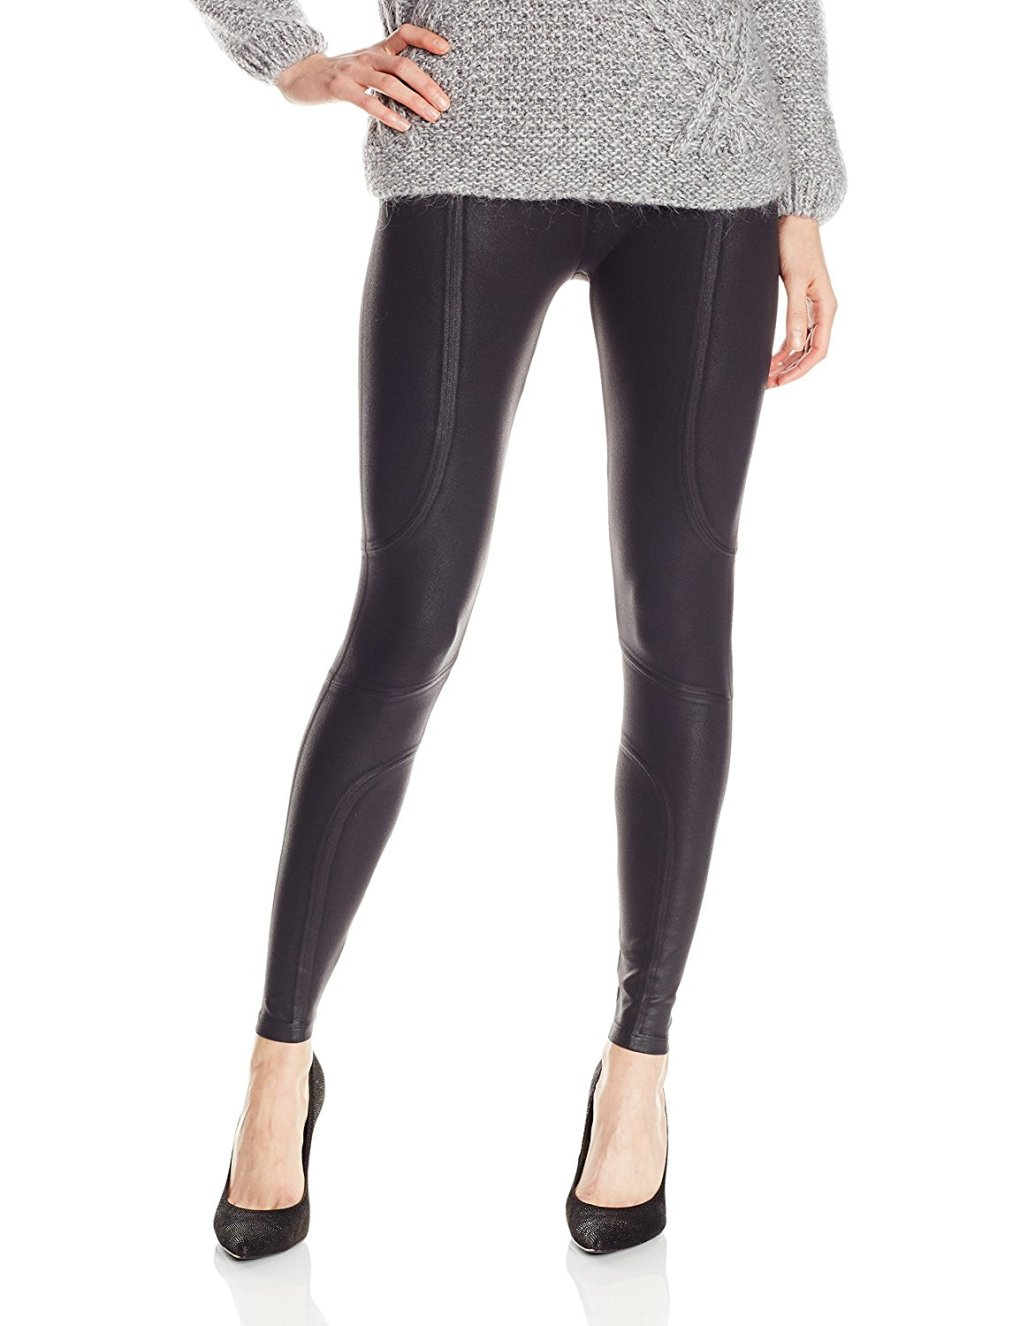 Yummie by Heather Thomson Women's Modern Mid-Rise Slimming Coated Moto Leggings